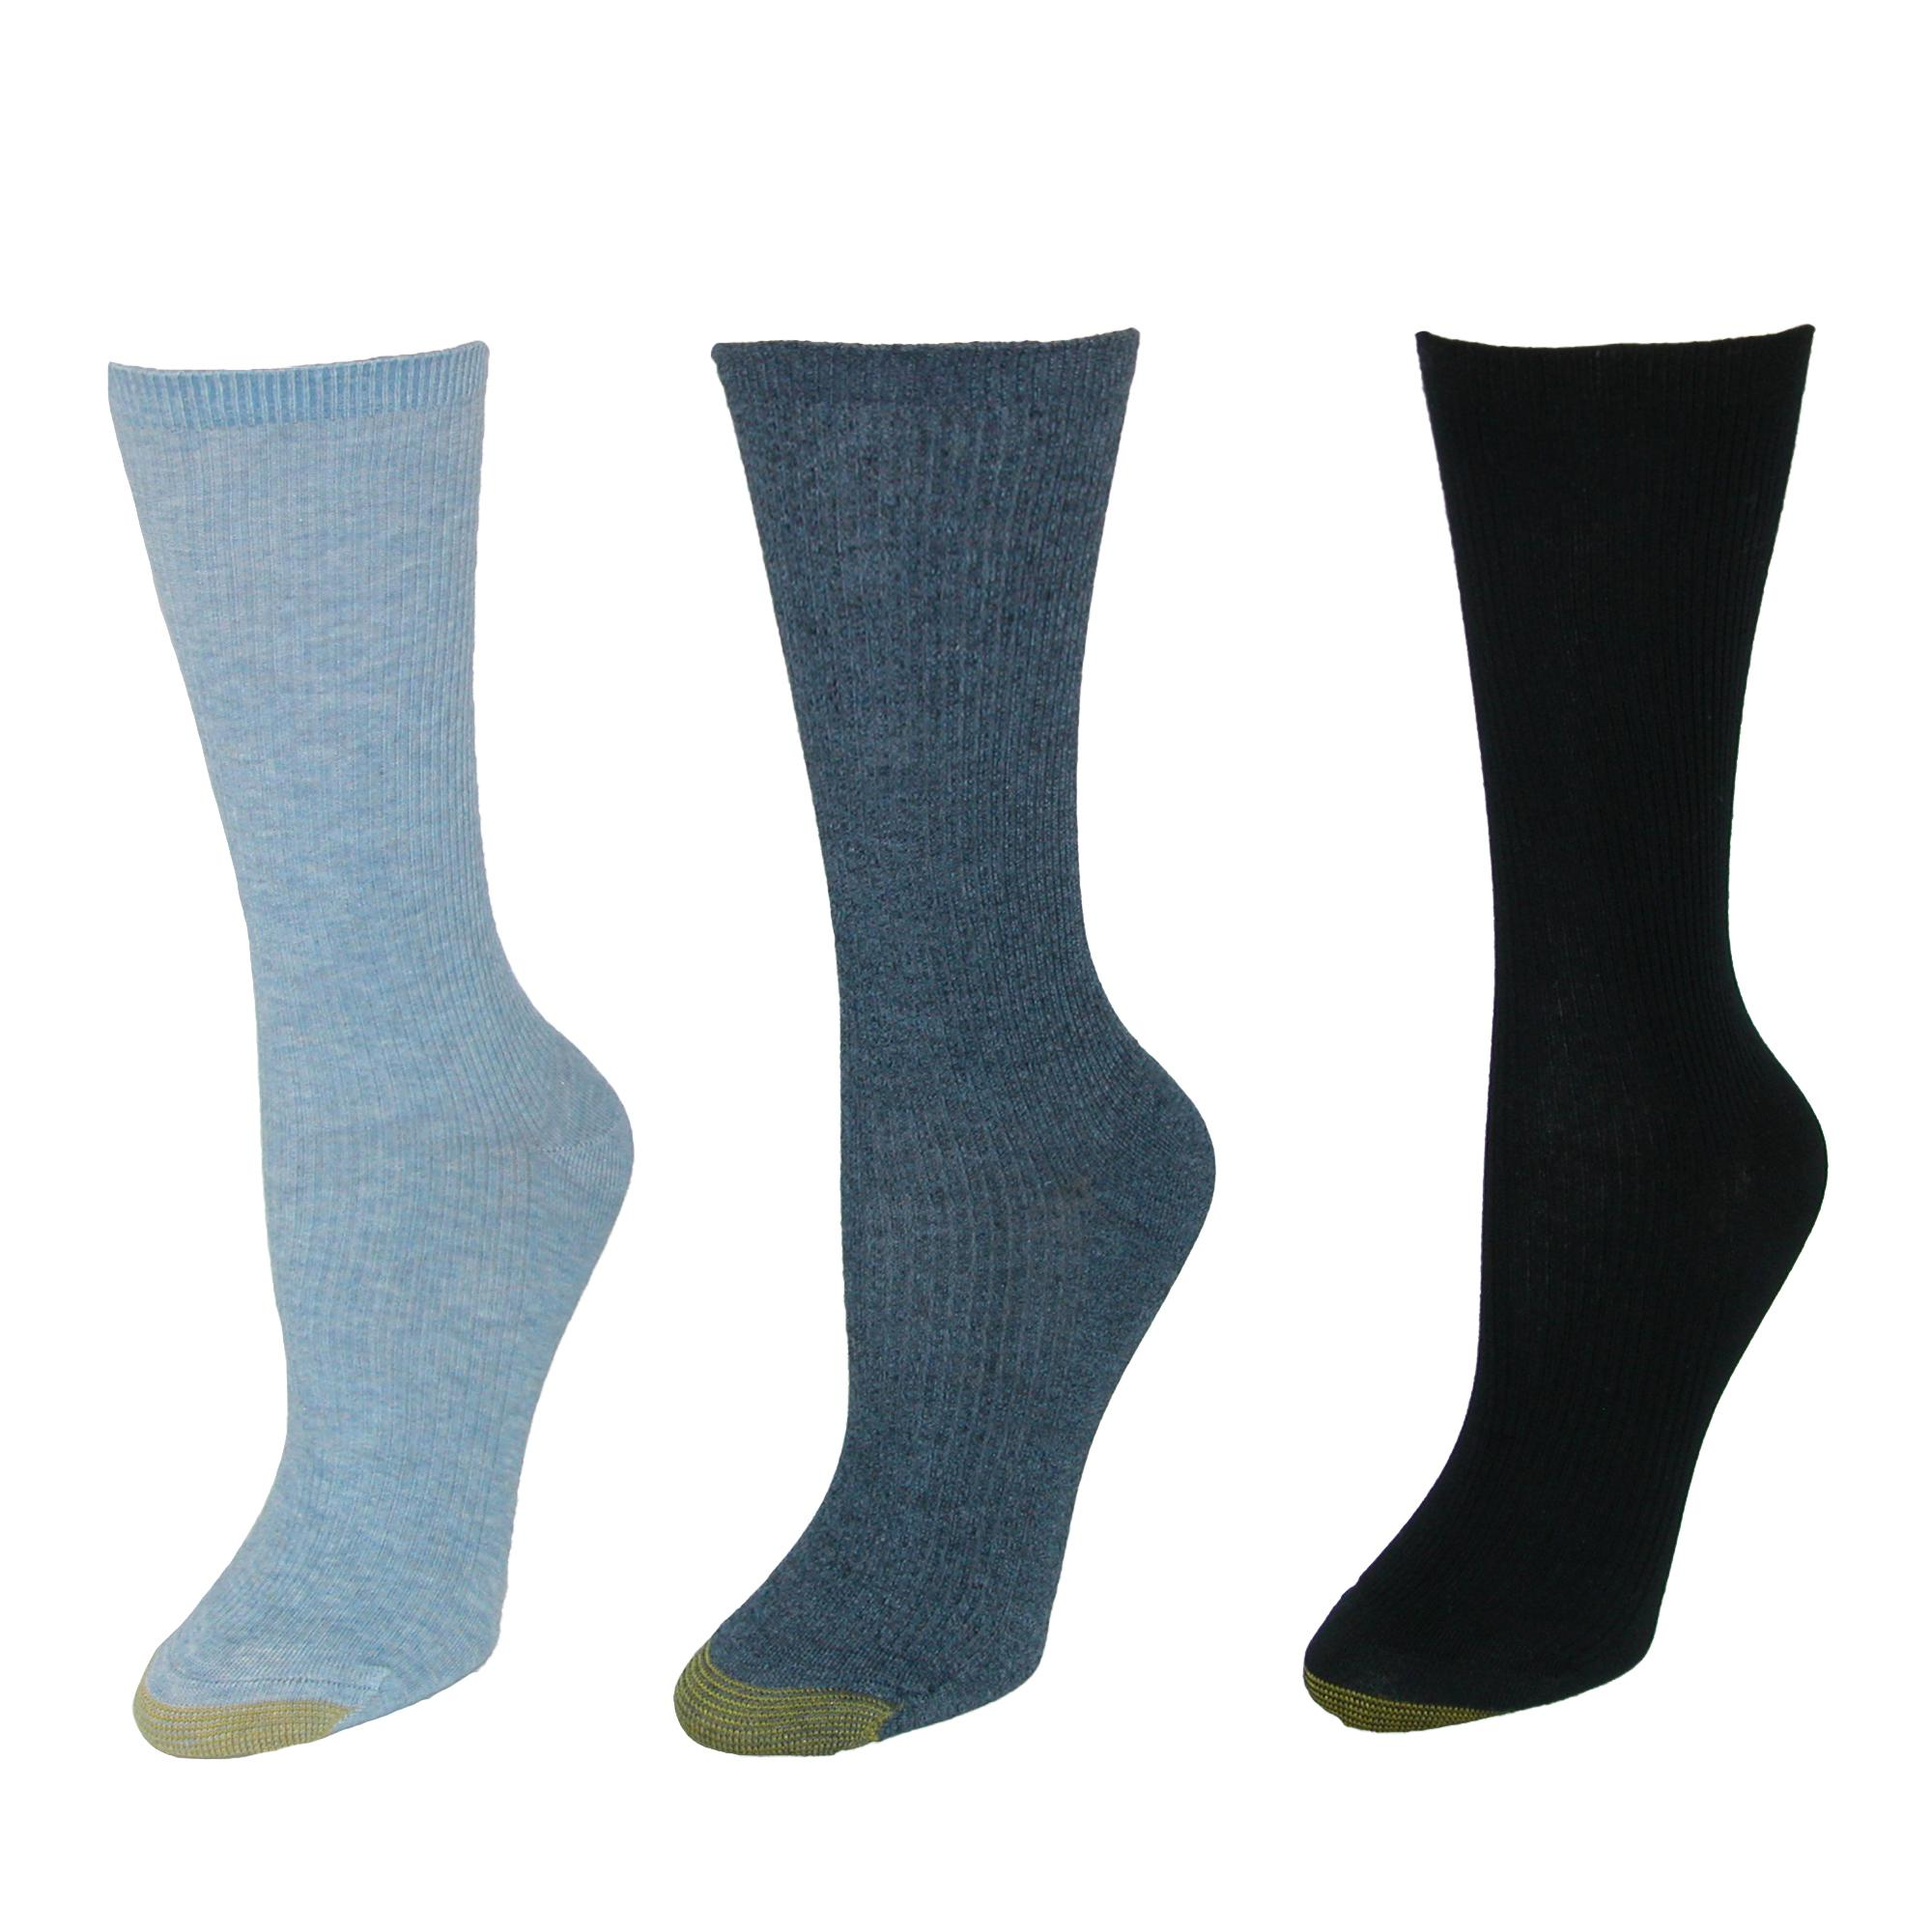 2 Pack    634-WOMENS-9-11 HealthTrak Women/'s No-Bind Comfort Top Crew Socks